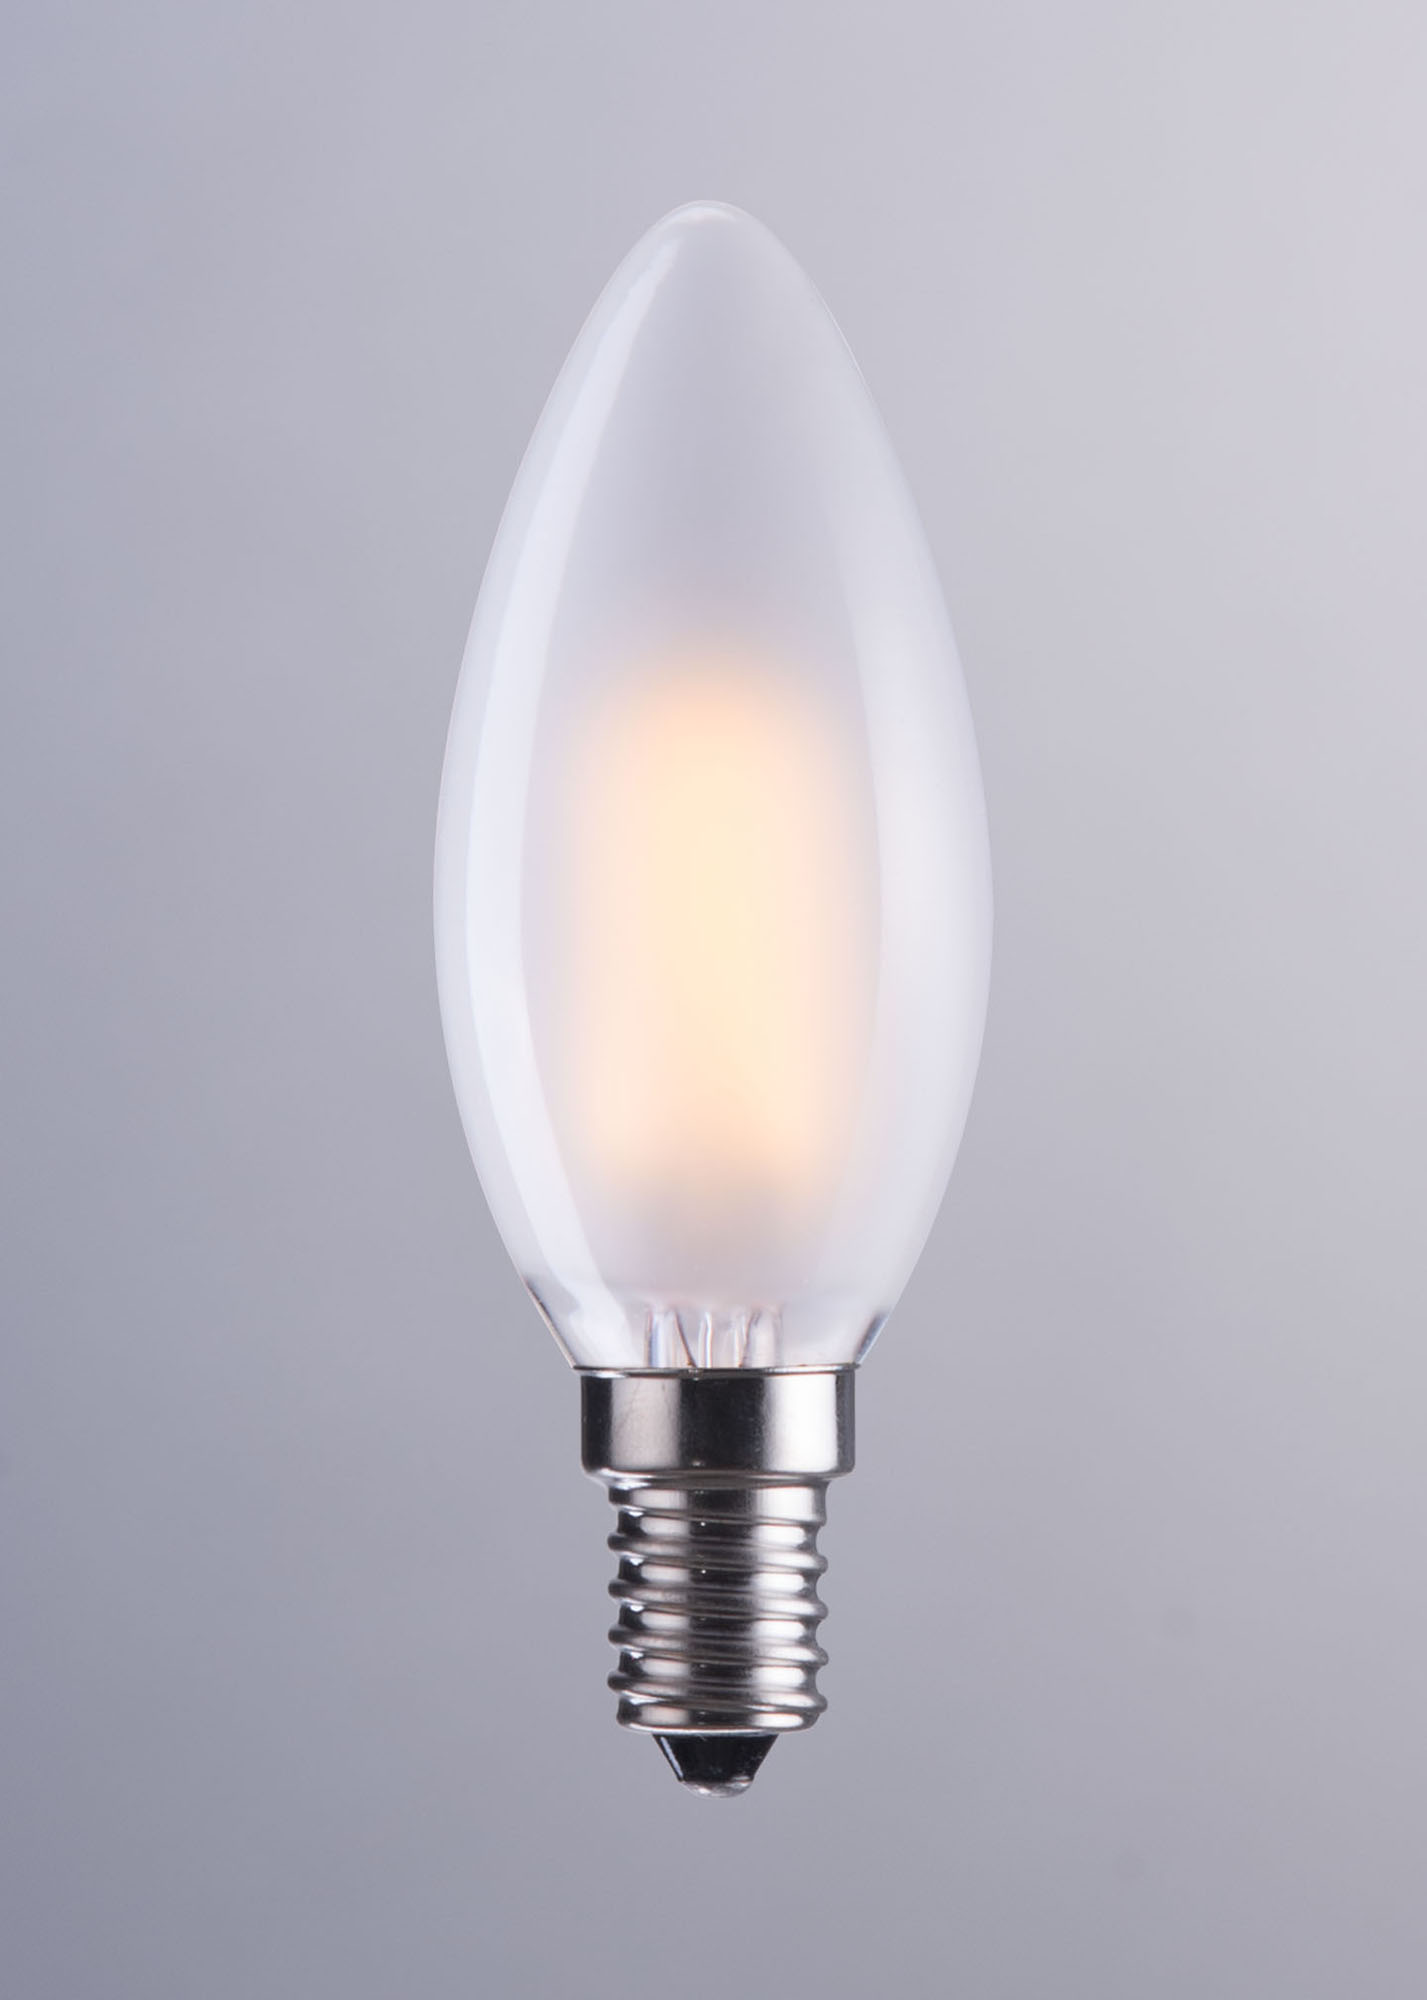 Type B Light Bulb Led